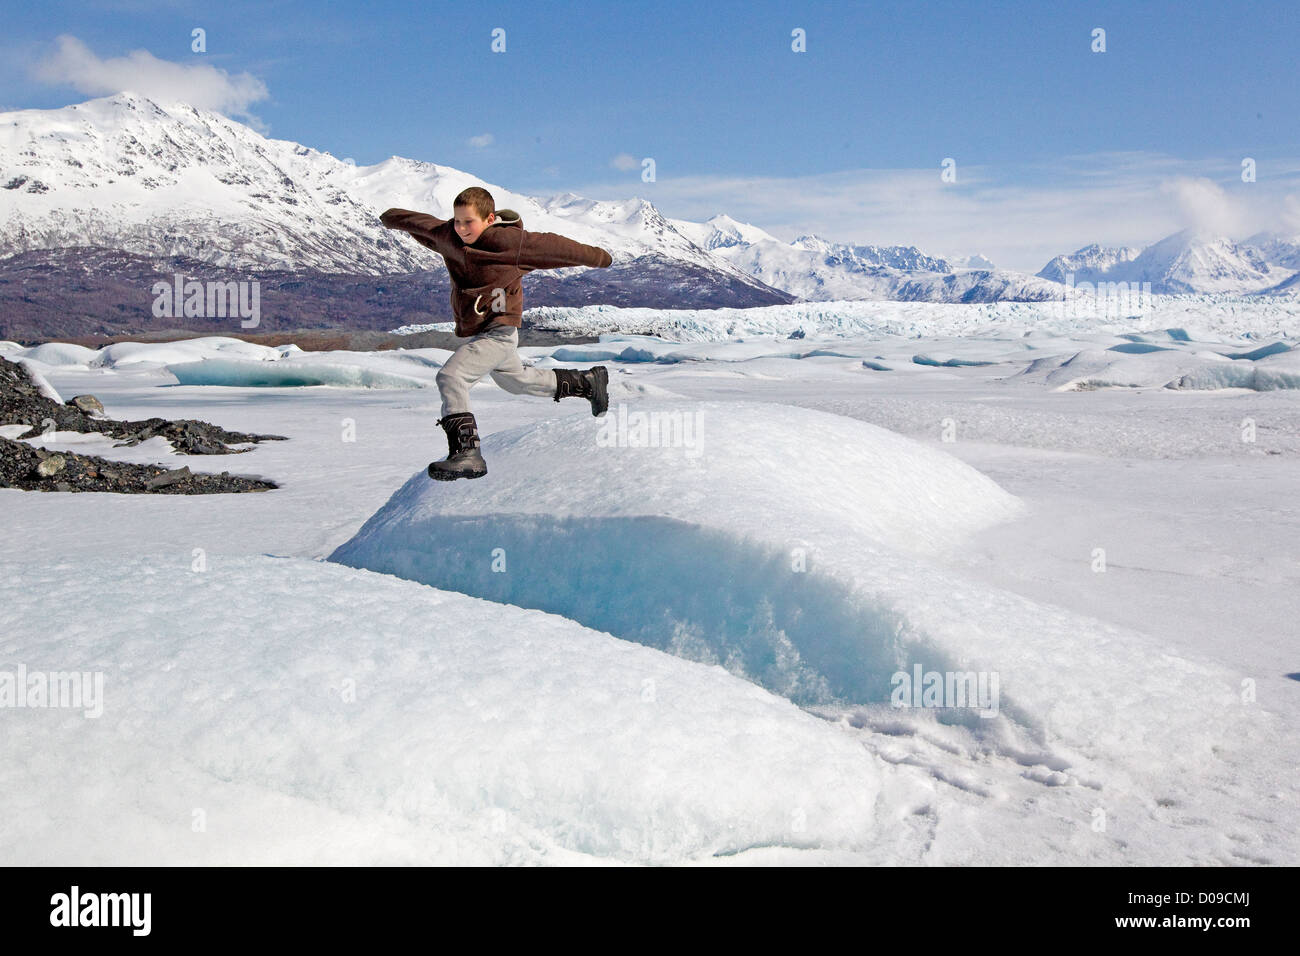 Boy leaps on Alaska glacier, Alaskan wilderness, Chugach Mountains, Alaska, US - Stock Image